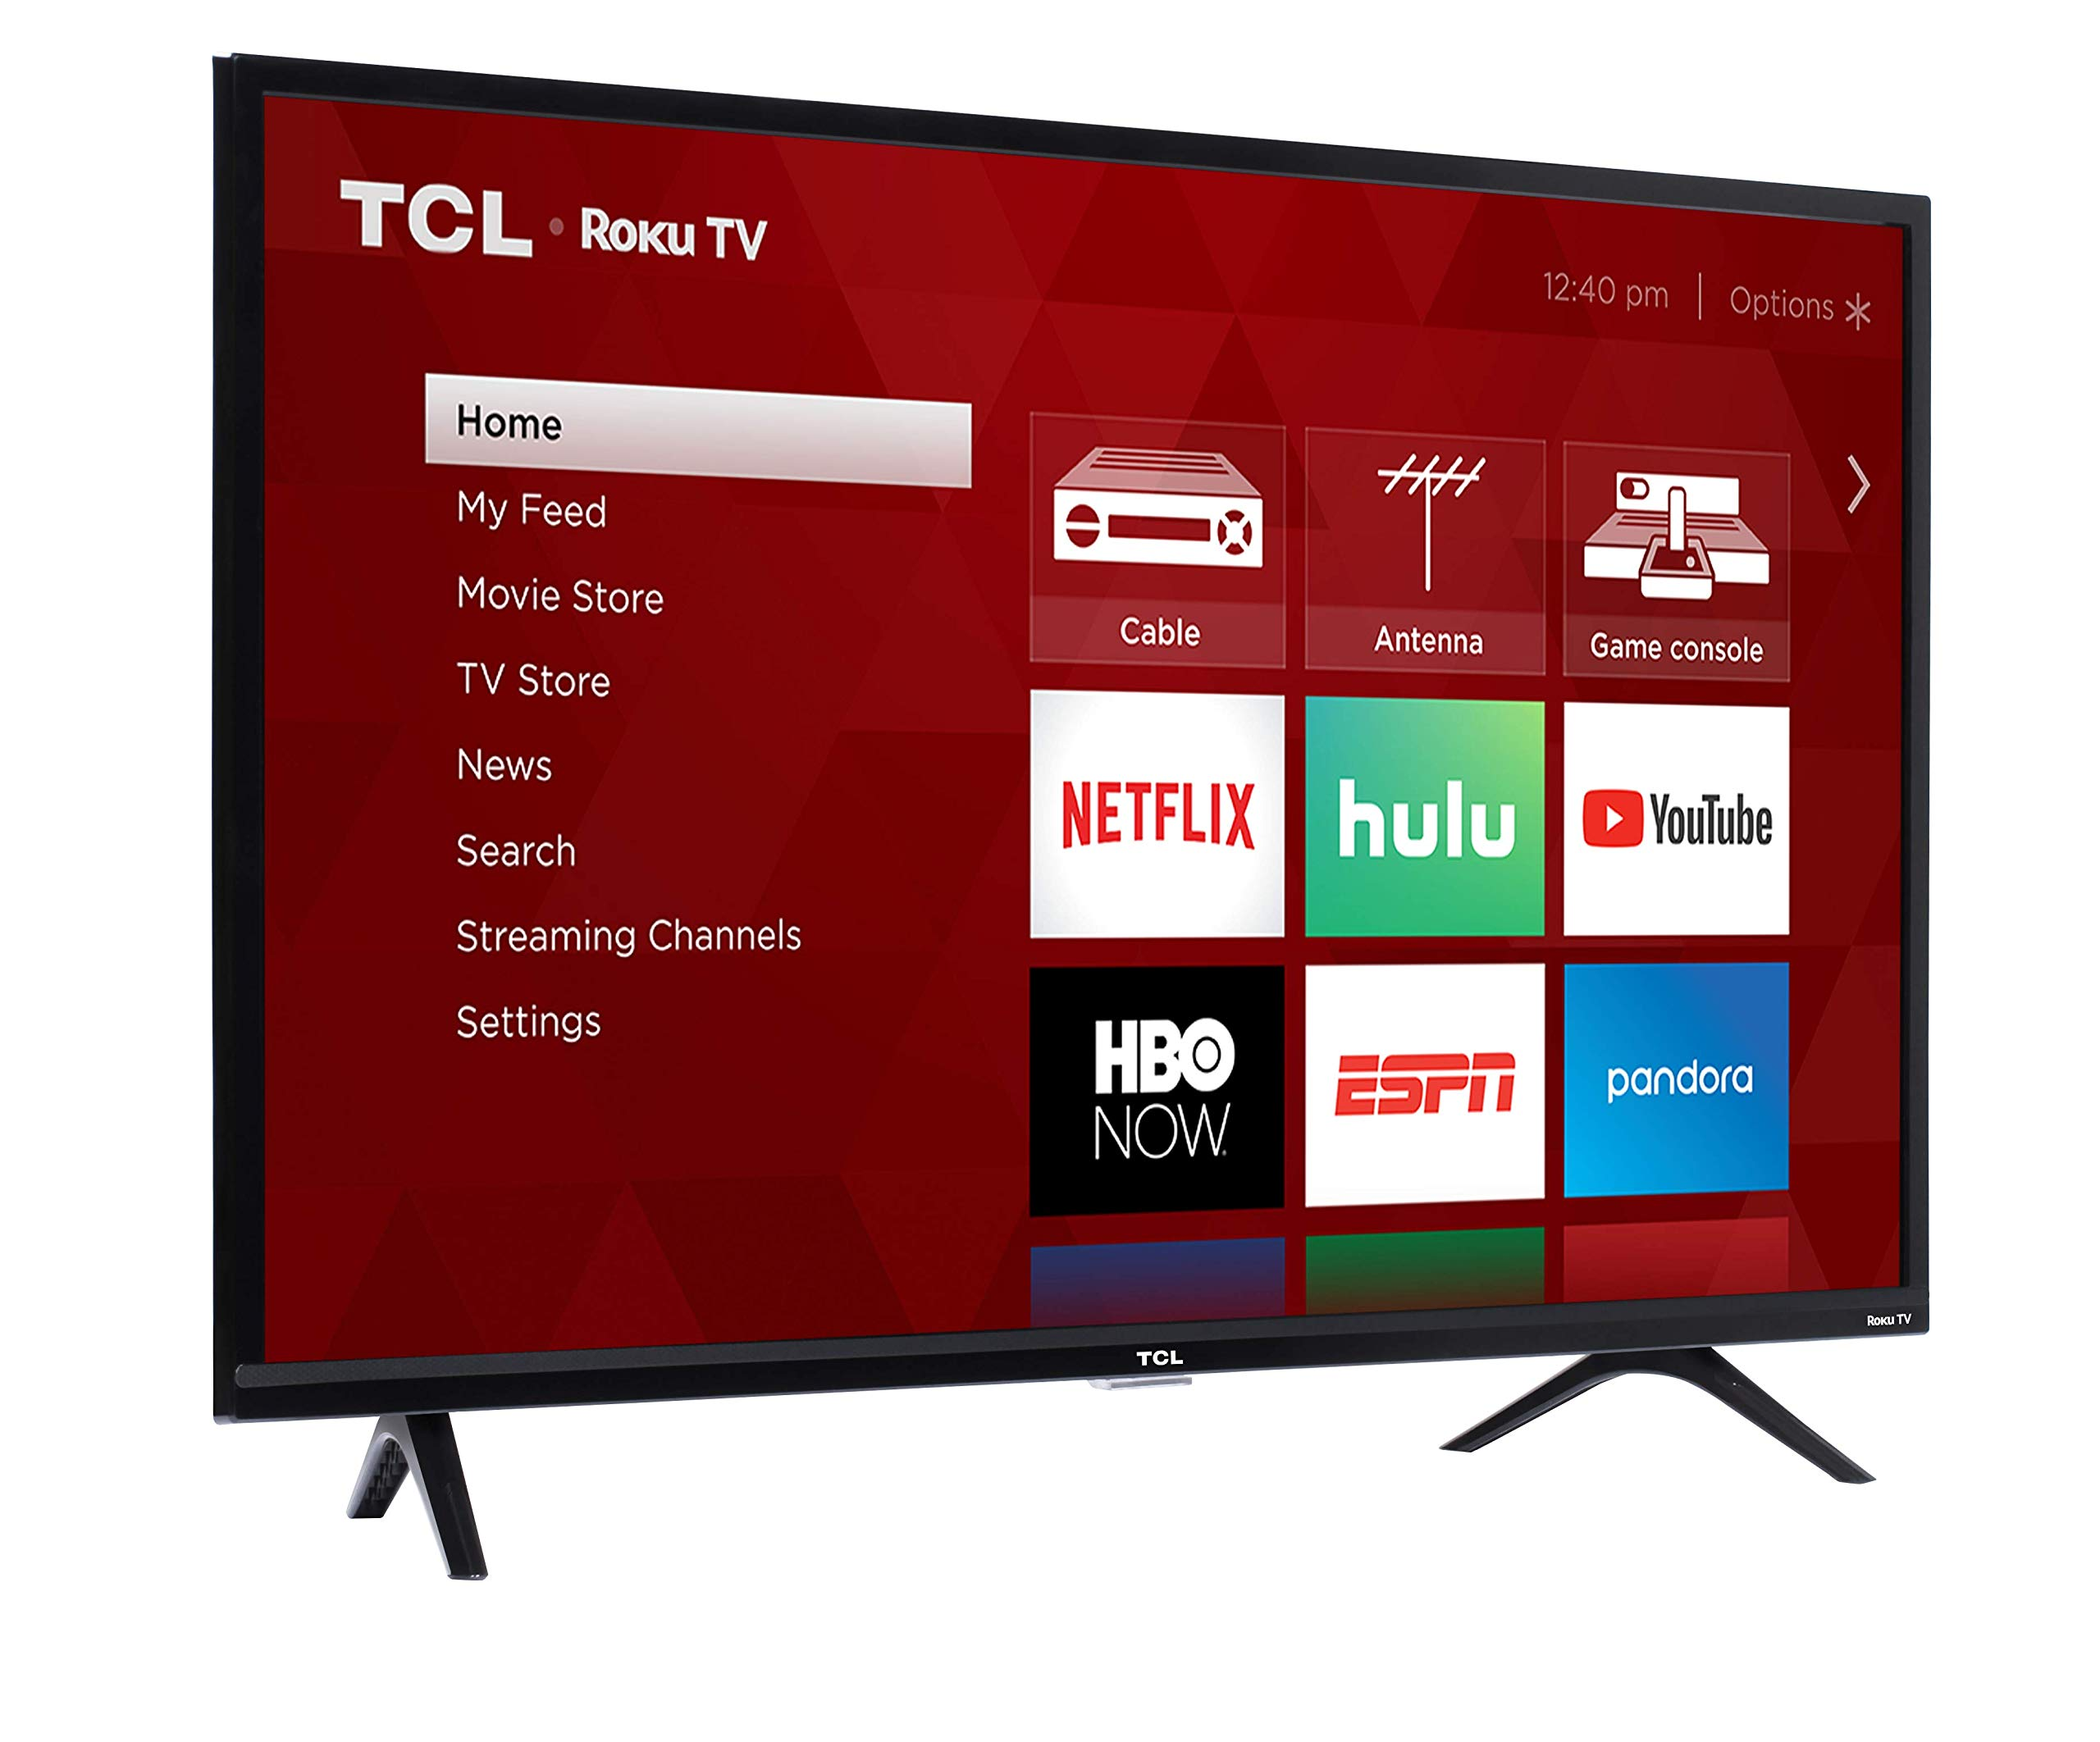 TCL 49S325 49 Inch 1080p Smart Roku LED TV (2019) by TCL (Image #7)